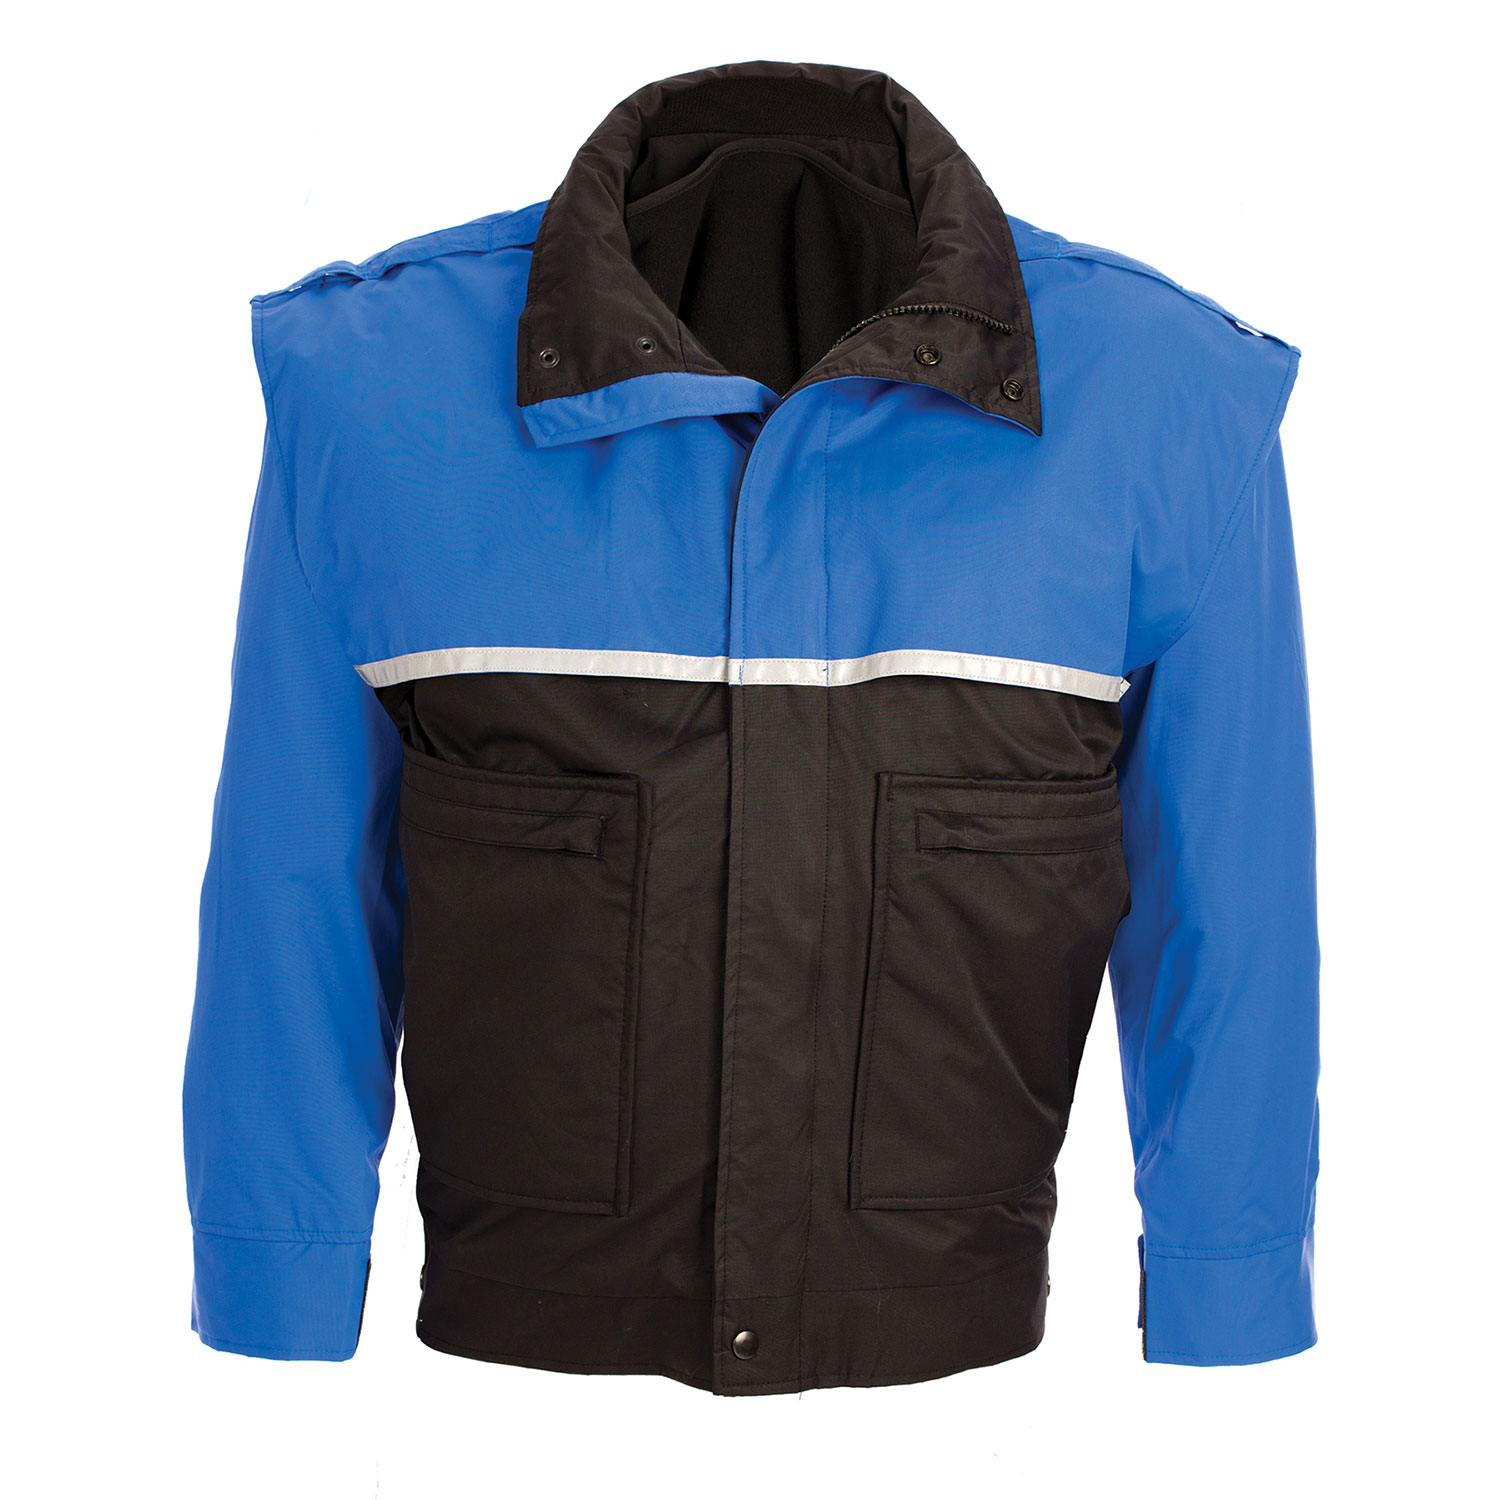 United Uniform Bike Jacket with Zip-Off Sleeves